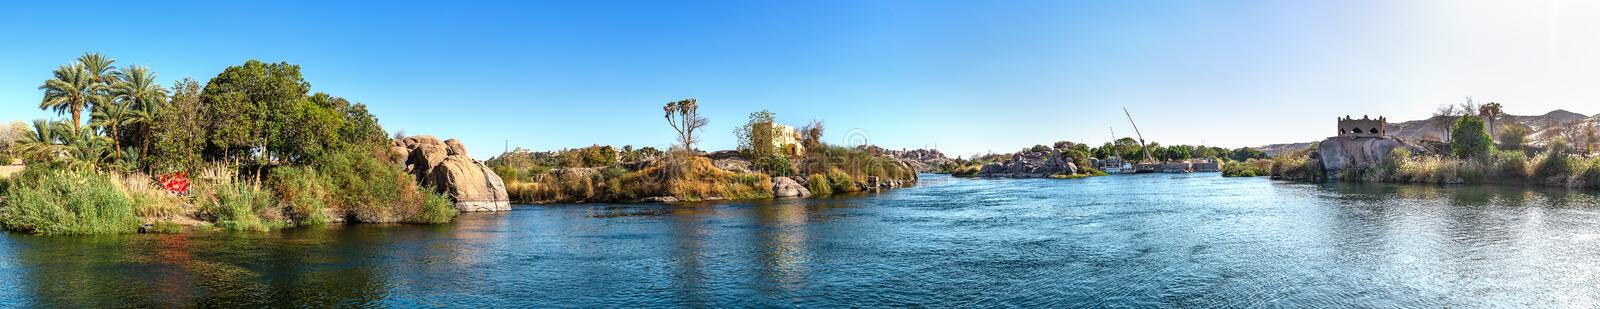 River Nile in Aswan. Panoramic view of river Nile in Aswan at sunset, Egypt stock photography